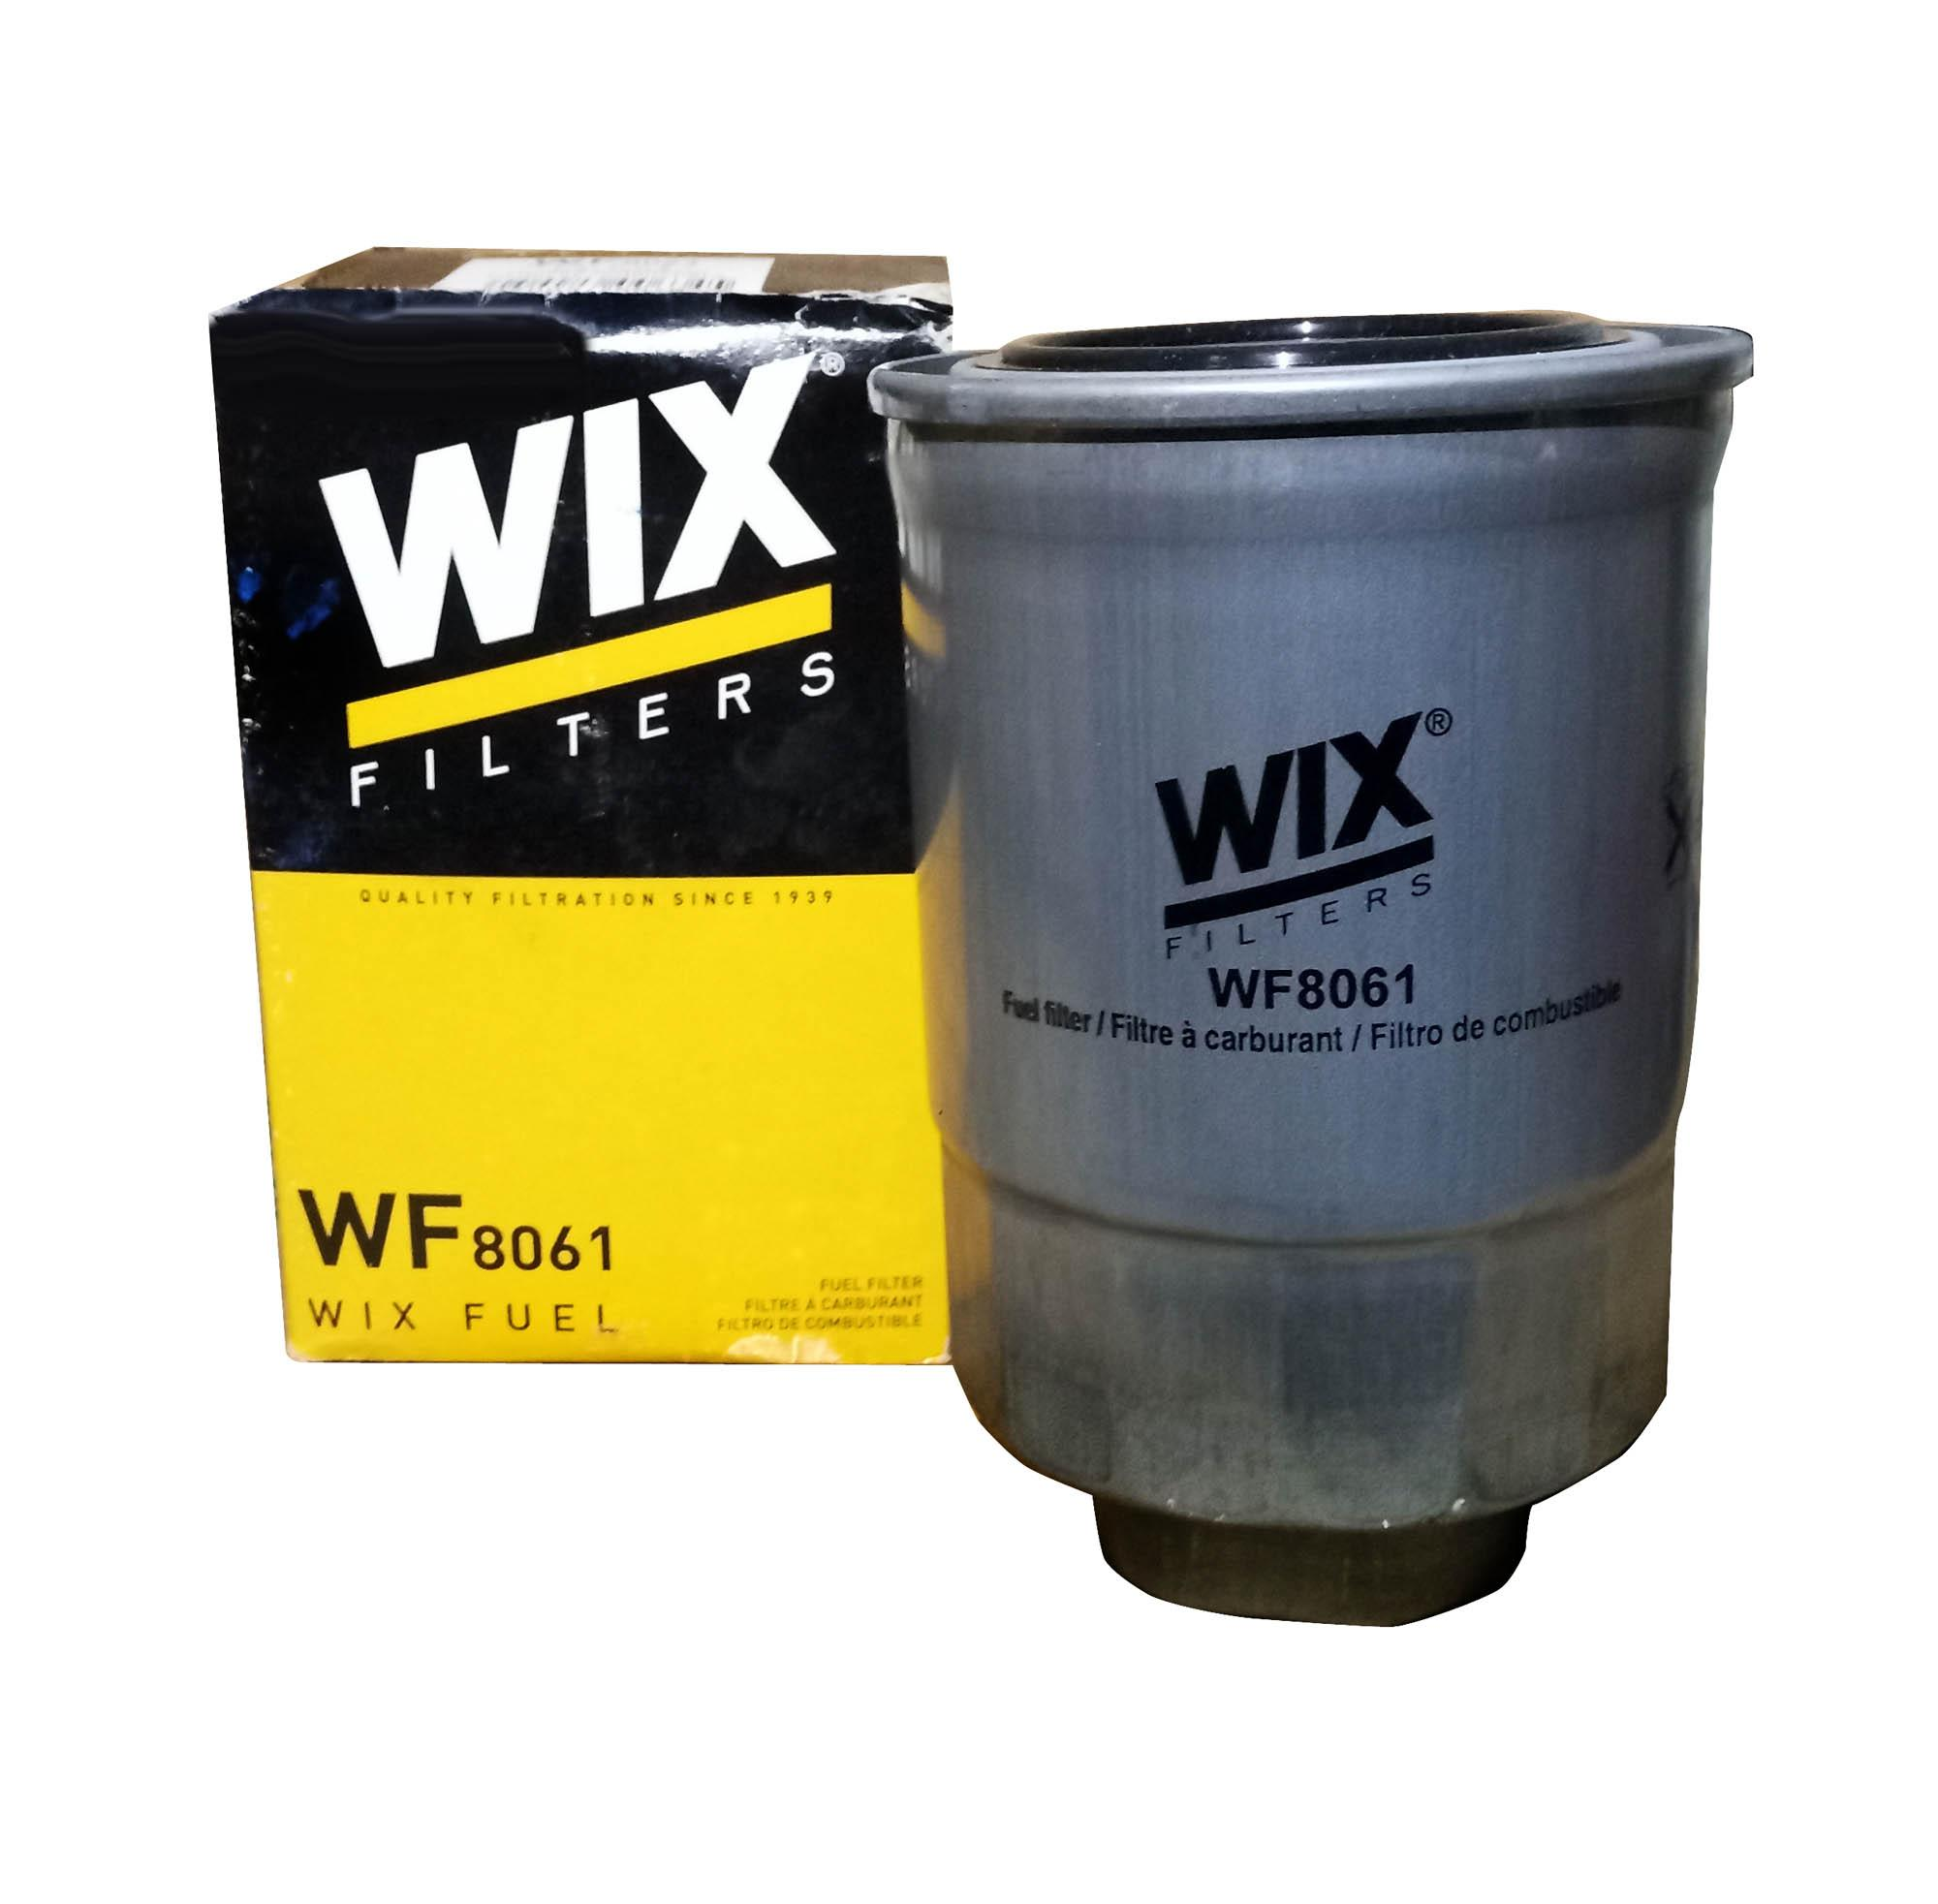 hight resolution of wix fuel filter wf8061 for mitsubishi montero sport triton di d 2006 11